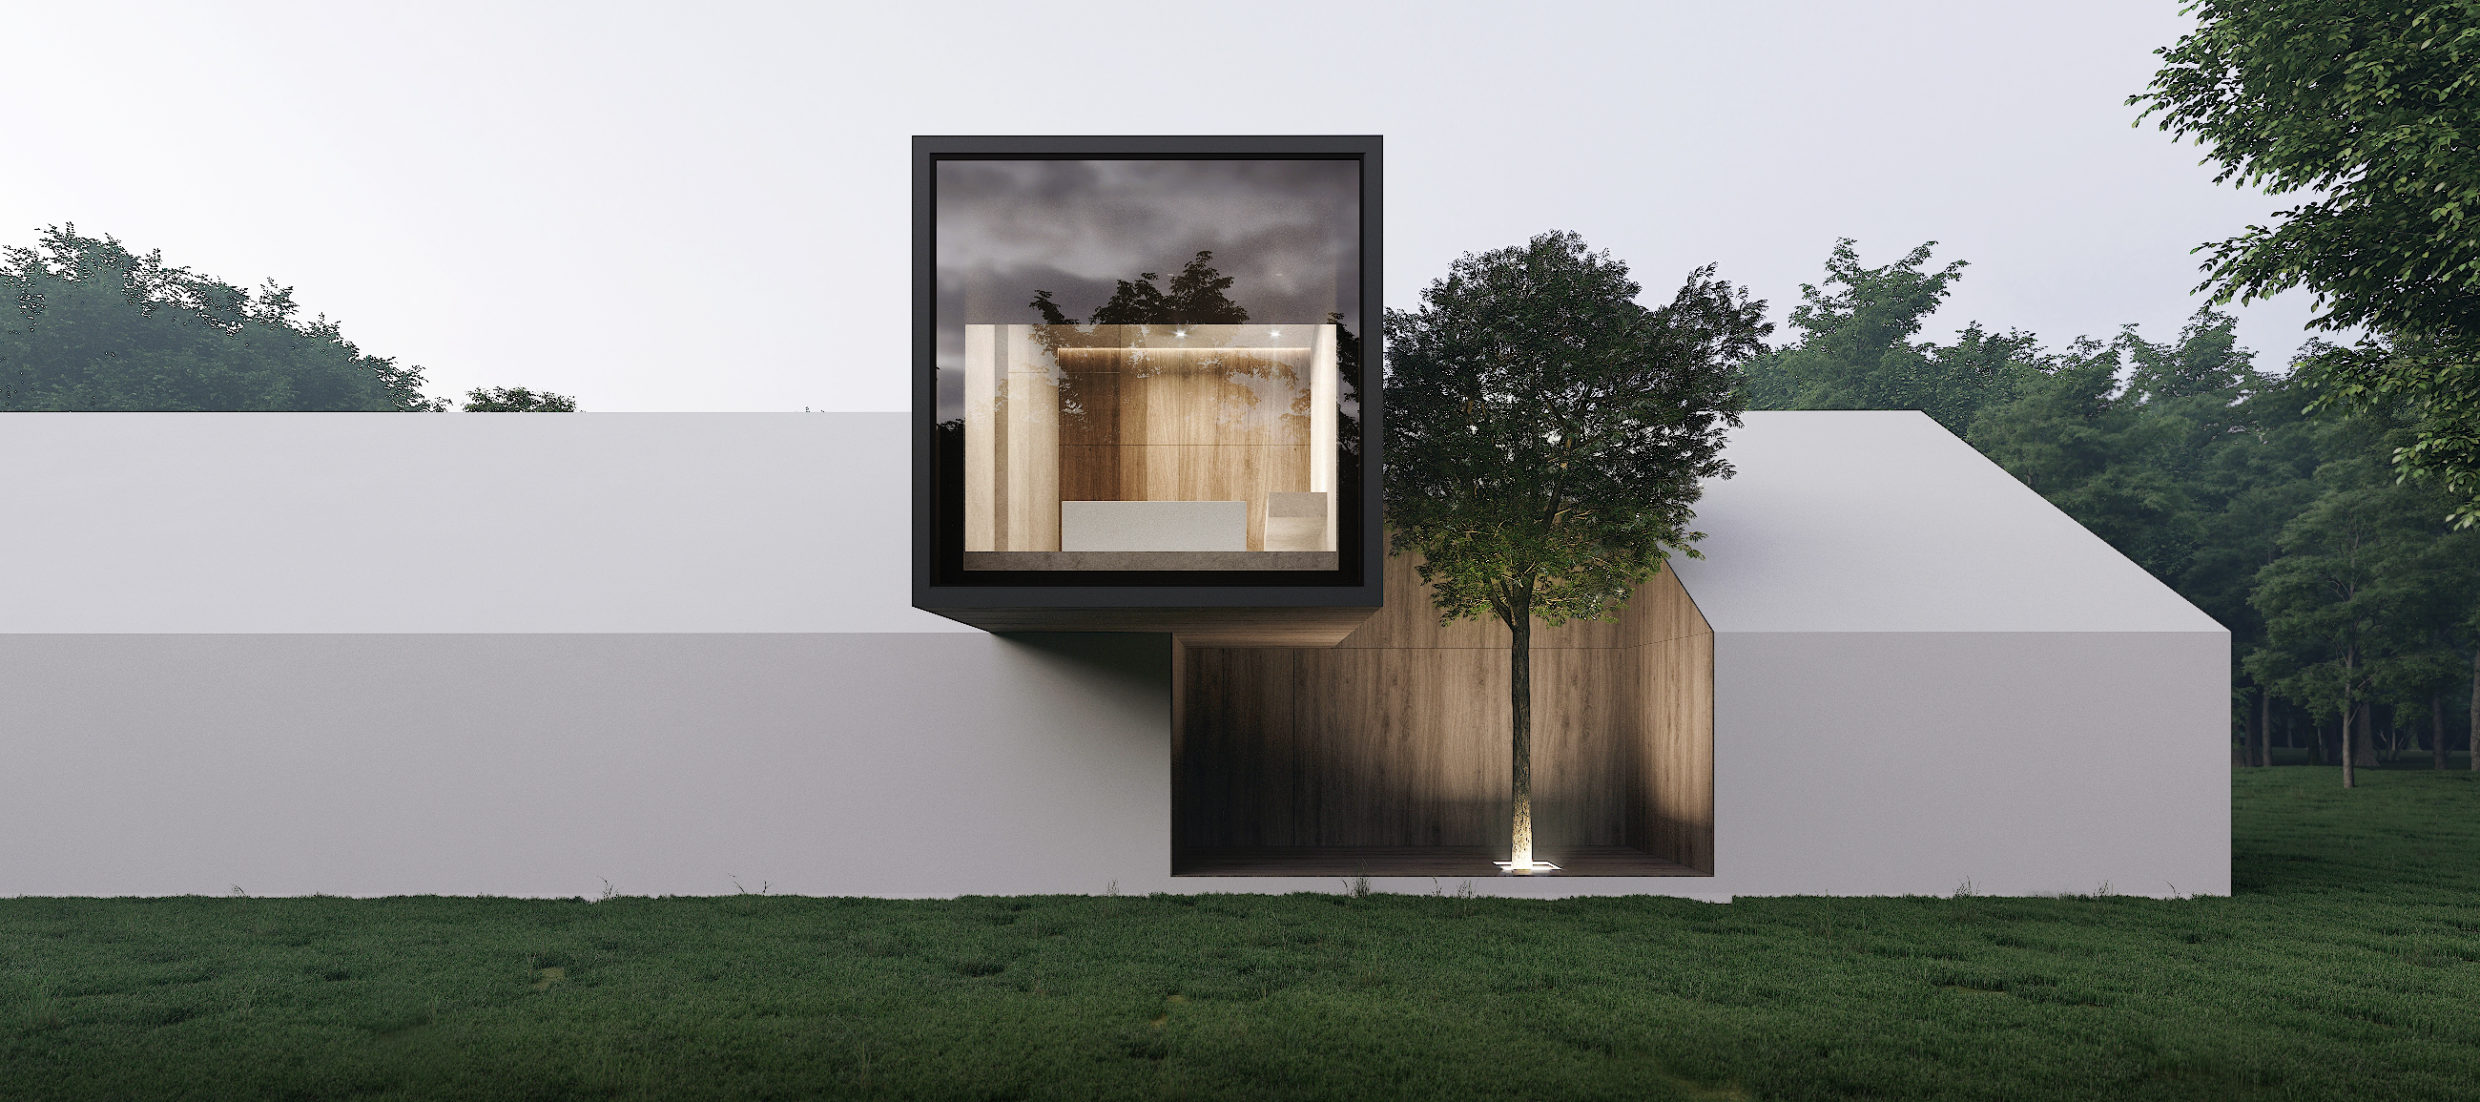 CONCEPT HOUSE lll 4